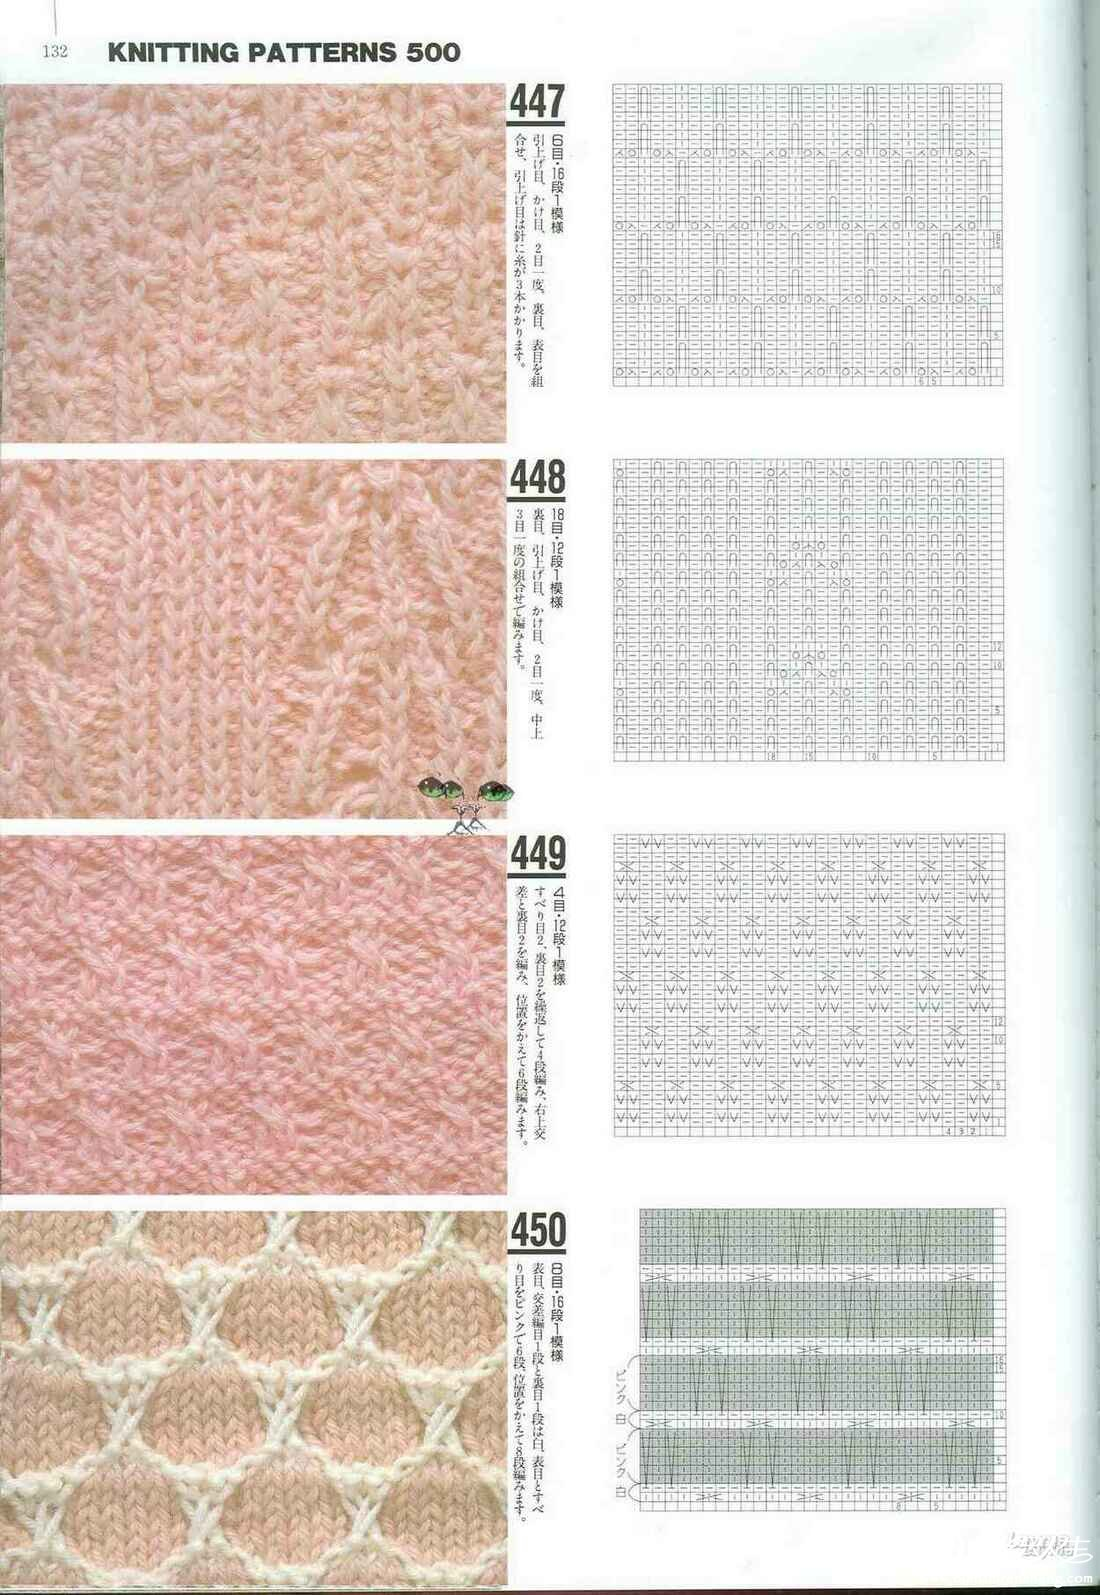 Knitting Patterns 500 129.jpg